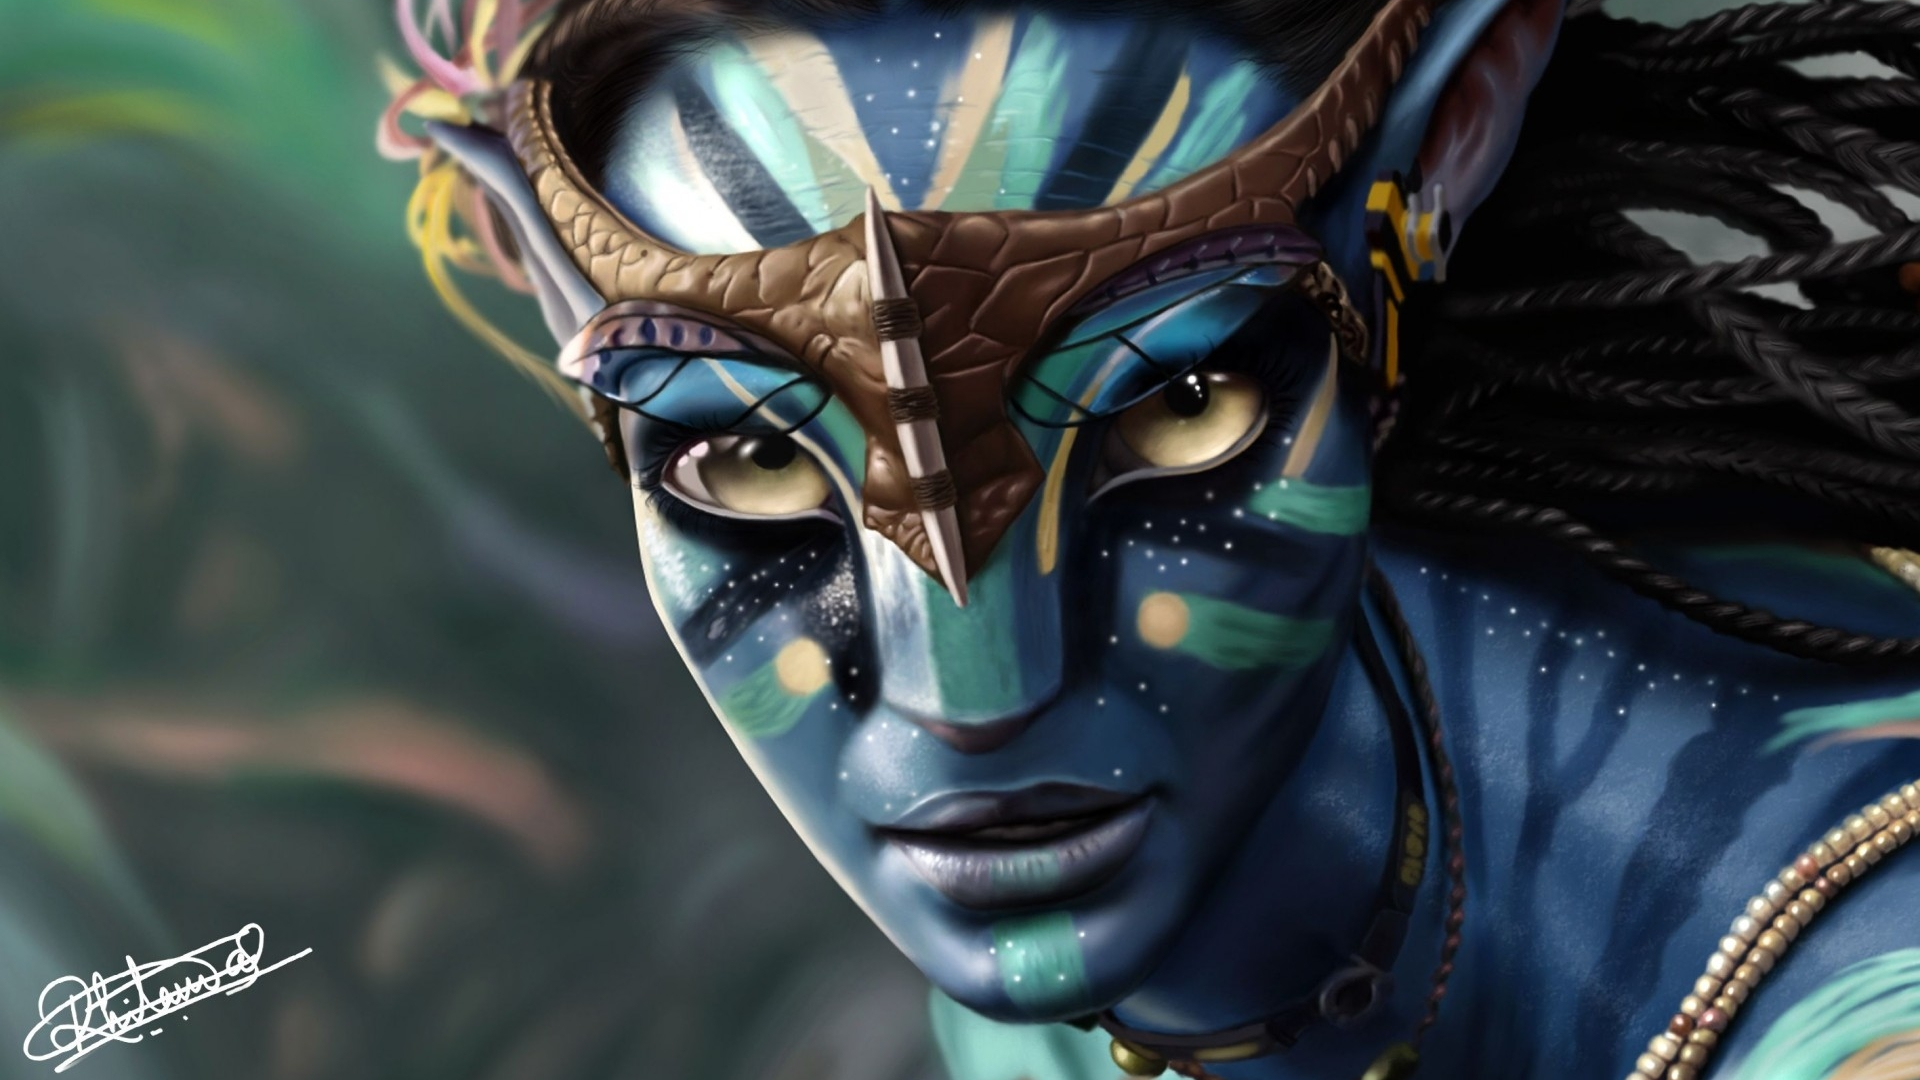 Free Hd Movie Download Point Avatar 2009 Free Hd Movie: Avatar Wallpapers For Desktop